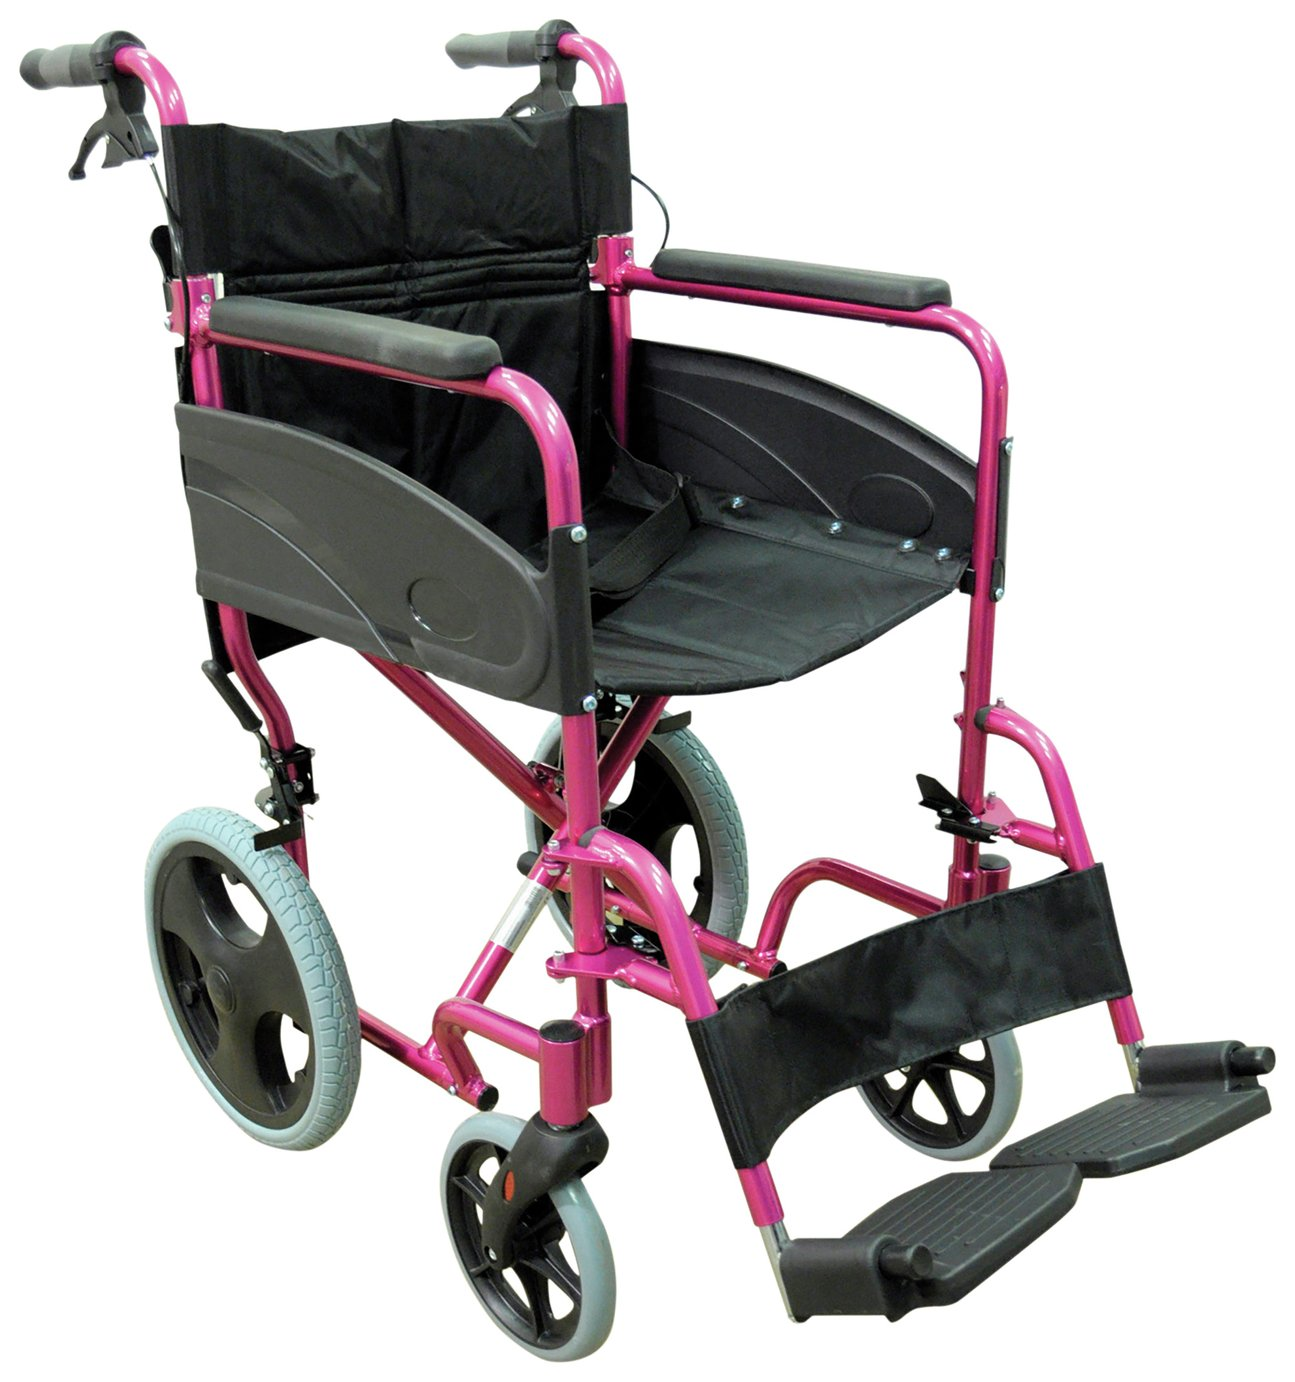 Aidapt Deluxe Transport Aluminium Wheelchair - Pink